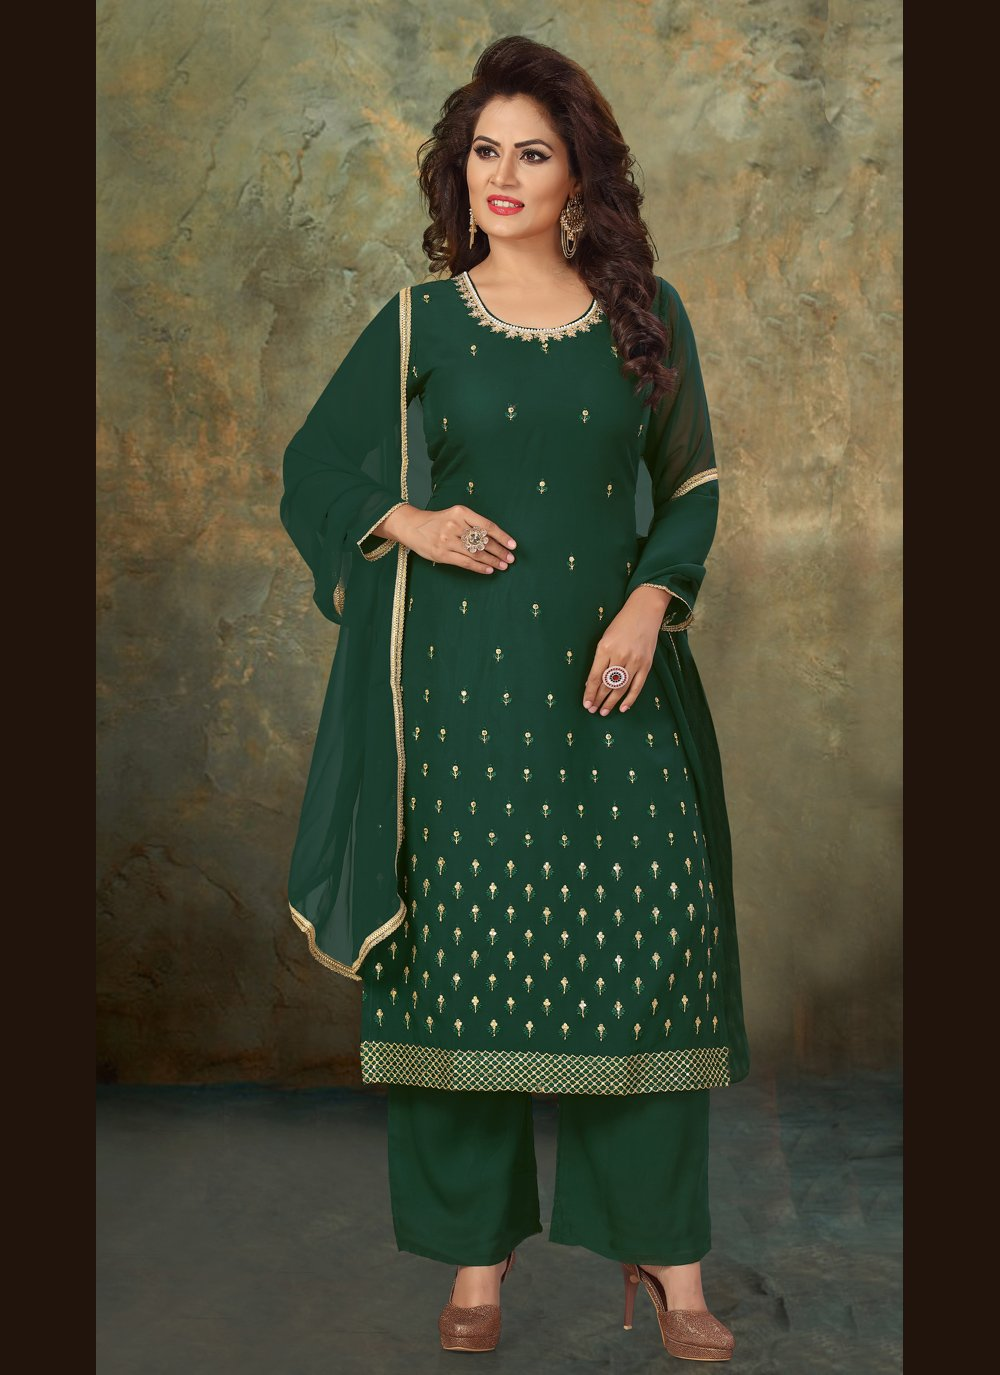 Faux Georgette Readymade Suit in Green